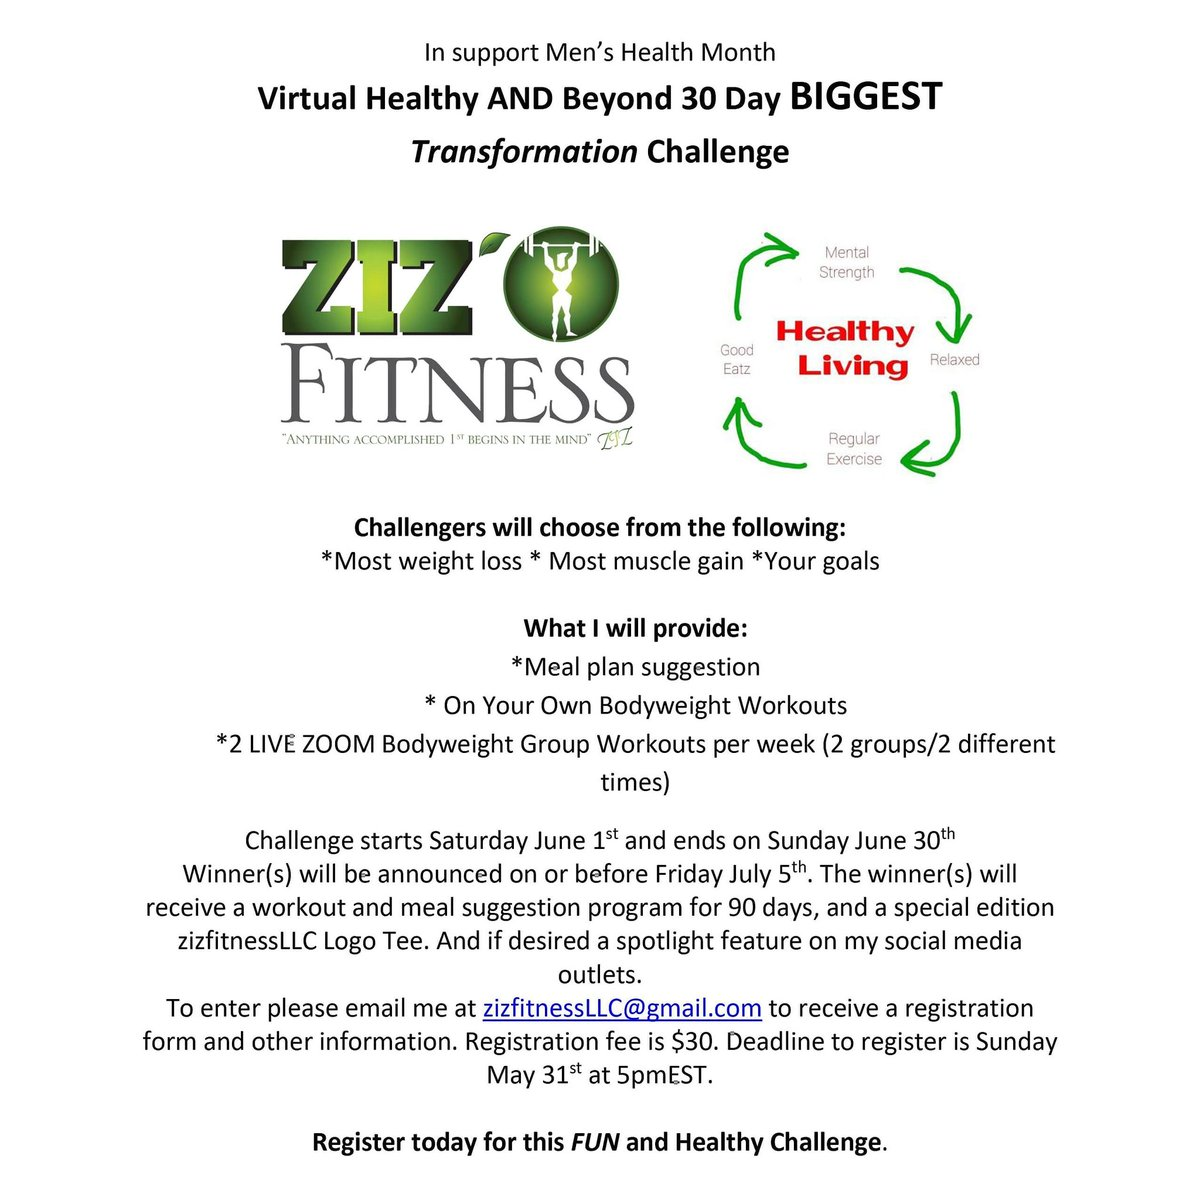 Men's Health Month is only a few days away. What goals do you have? What are you planning on doing about those goals? Allow me to assist in your fitness and nutrition goals.   No Dayz Off   #fit #fitness #supportisessential #vegan #fitover40 #bodybuilding #allnatural #menshealth https://t.co/J0tRrufIhs